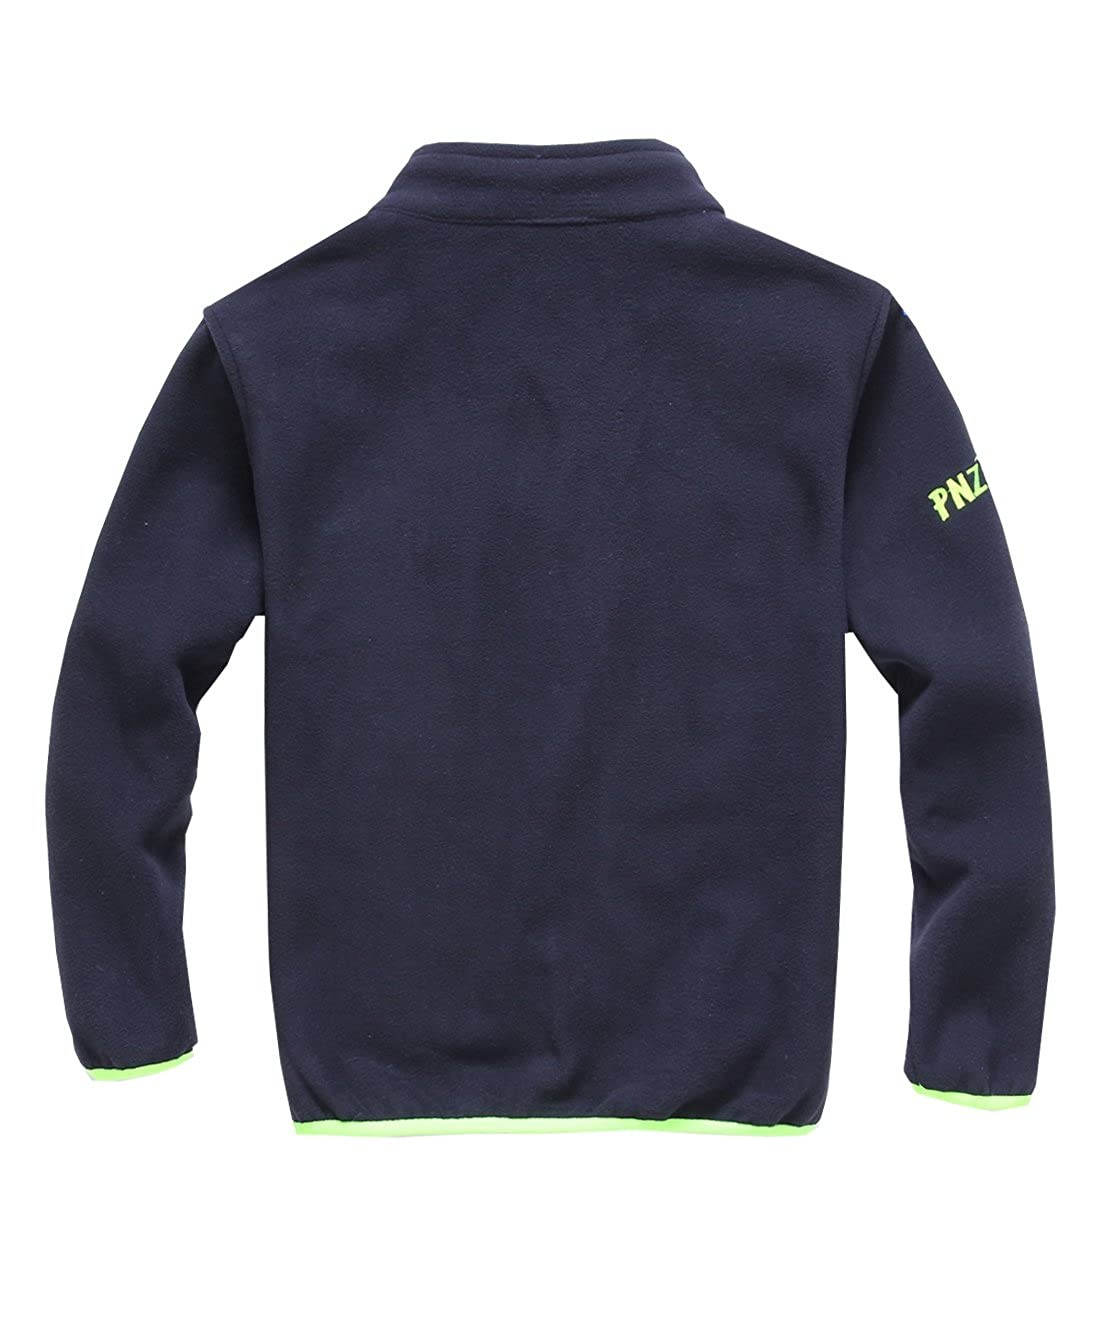 M2C Boys Girls Soft and Cozy Full Zip Polar Fleece Jacket